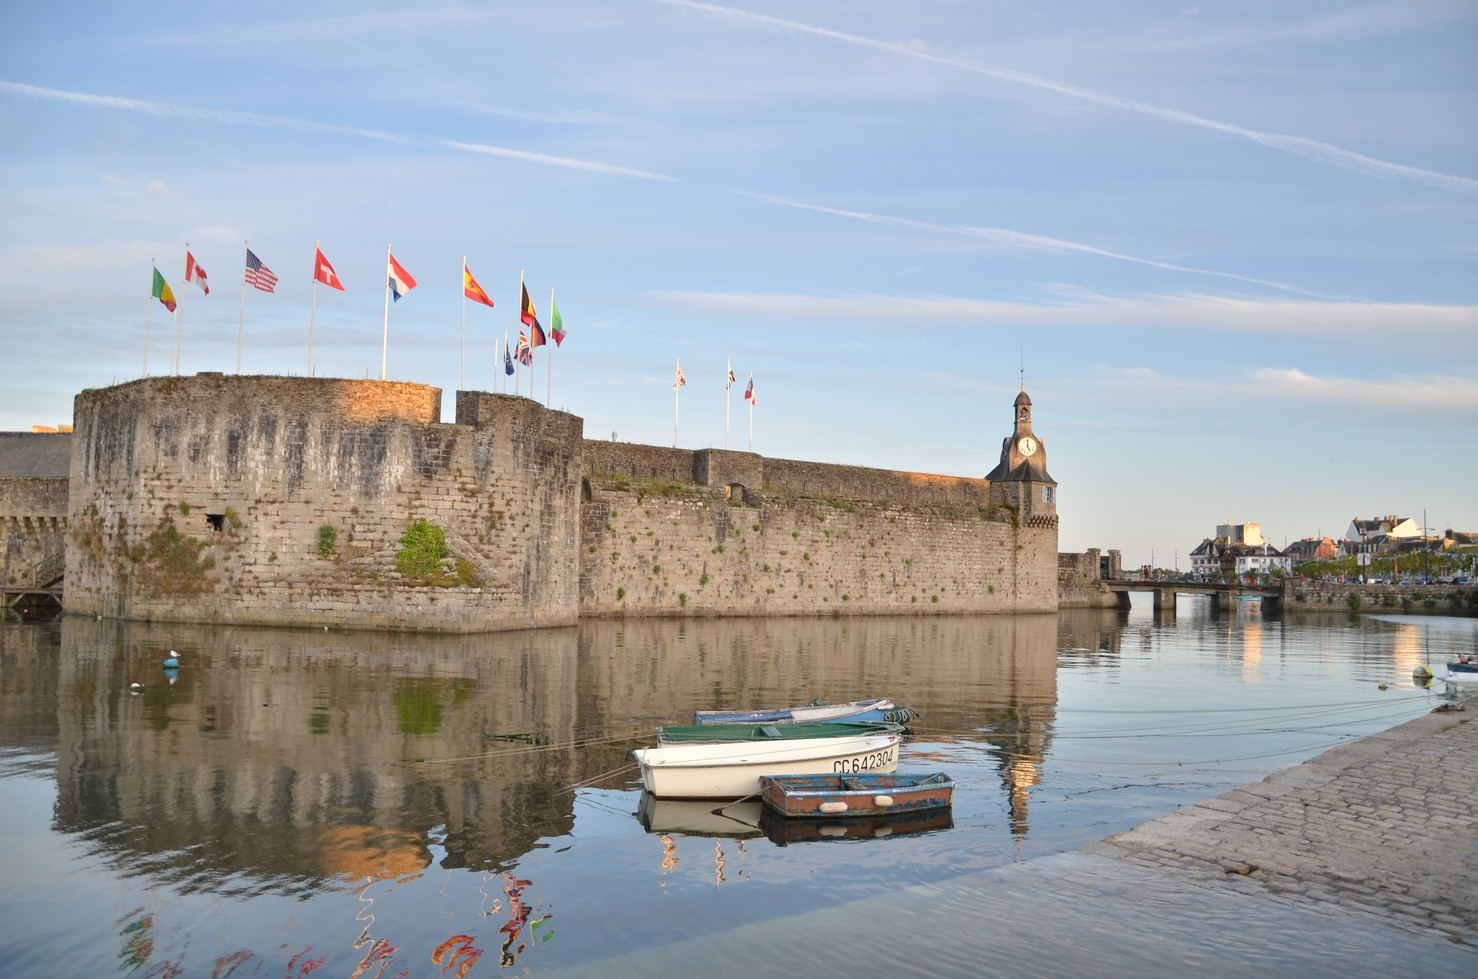 La visite de la ville close concarneau vacances for Piscine concarneau horaires